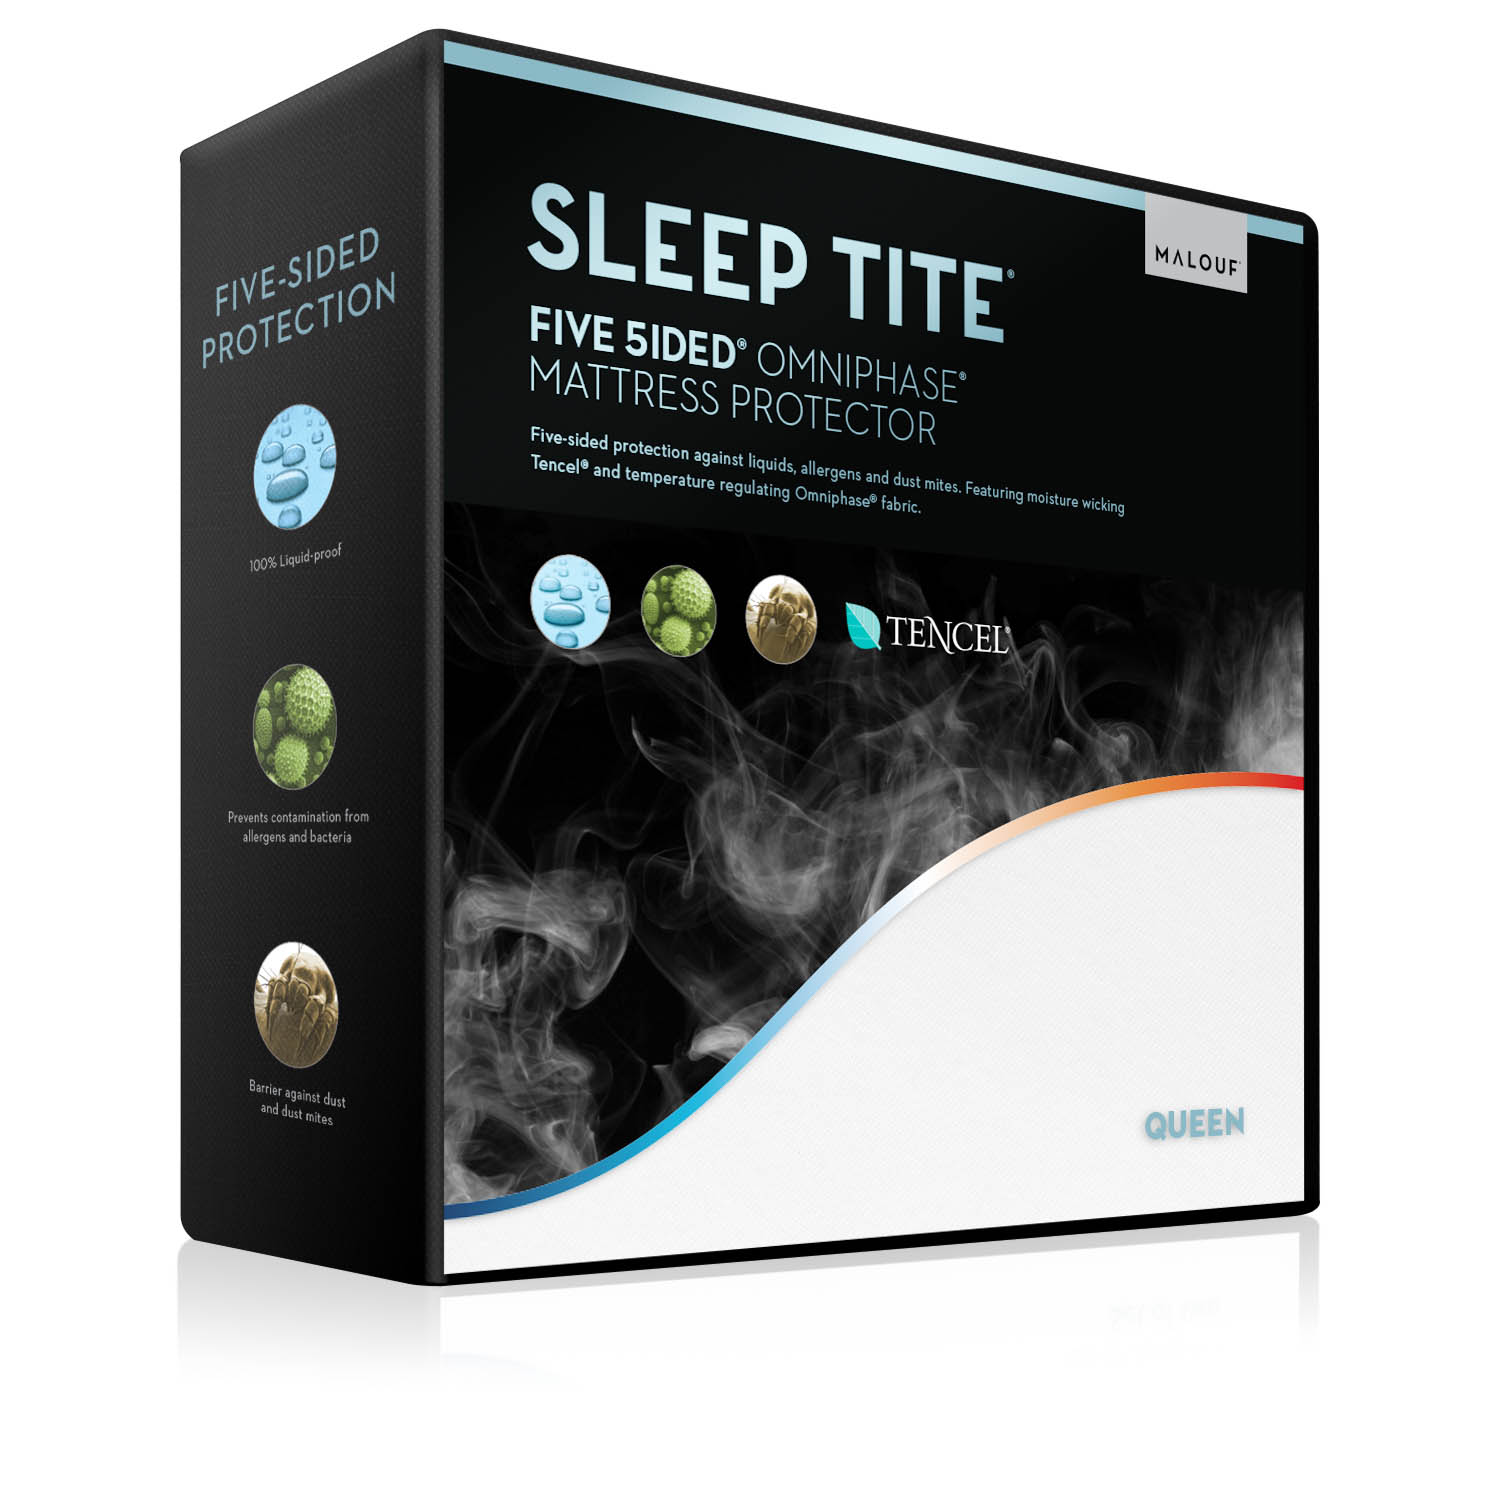 Malouf Sleep Tite Five Sided Omniphase Mattress Protector